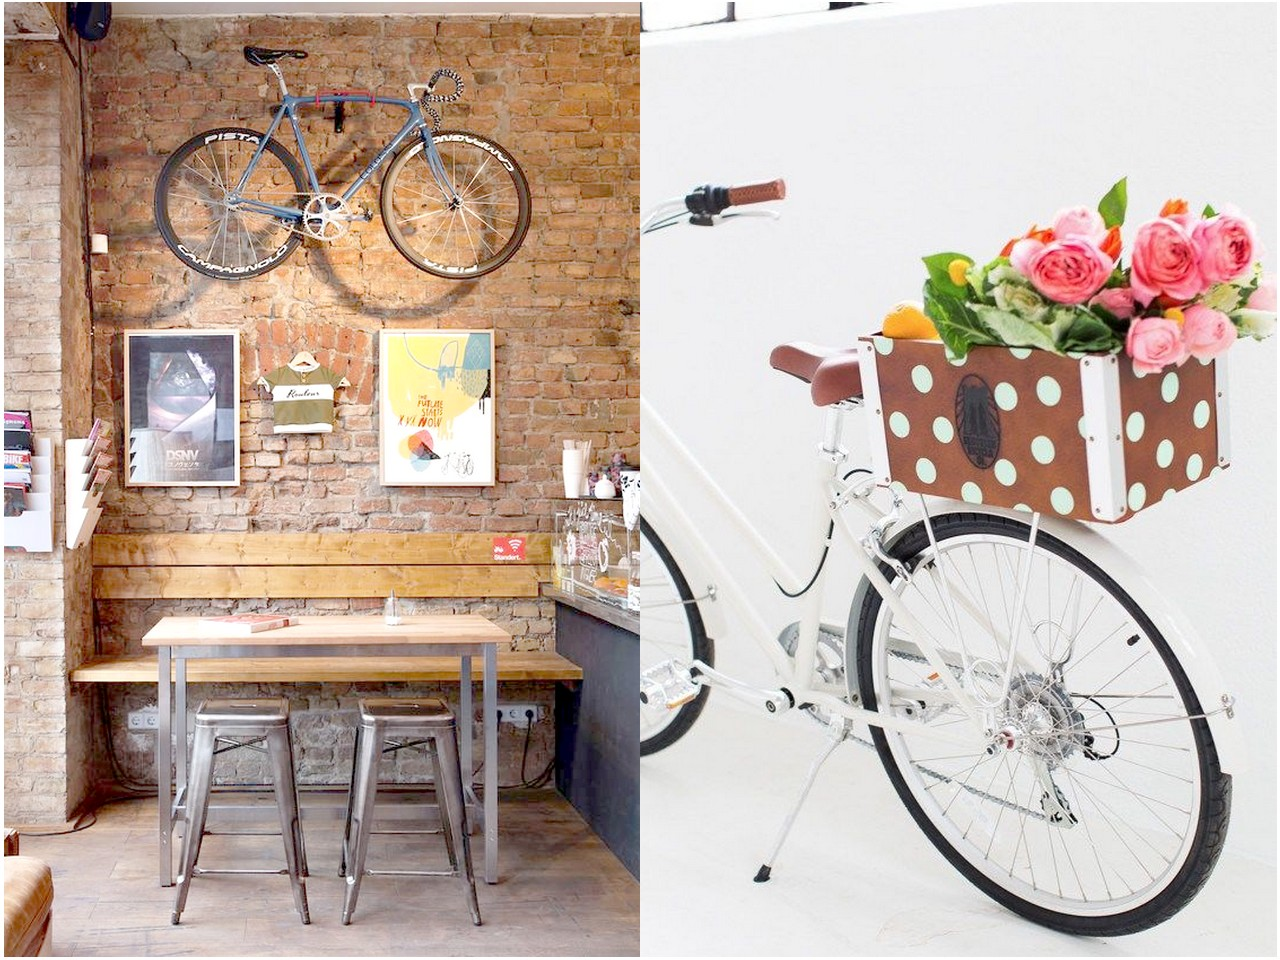 7 originales ideas para reciclar bicicletas - Ideas originales para decorar ...